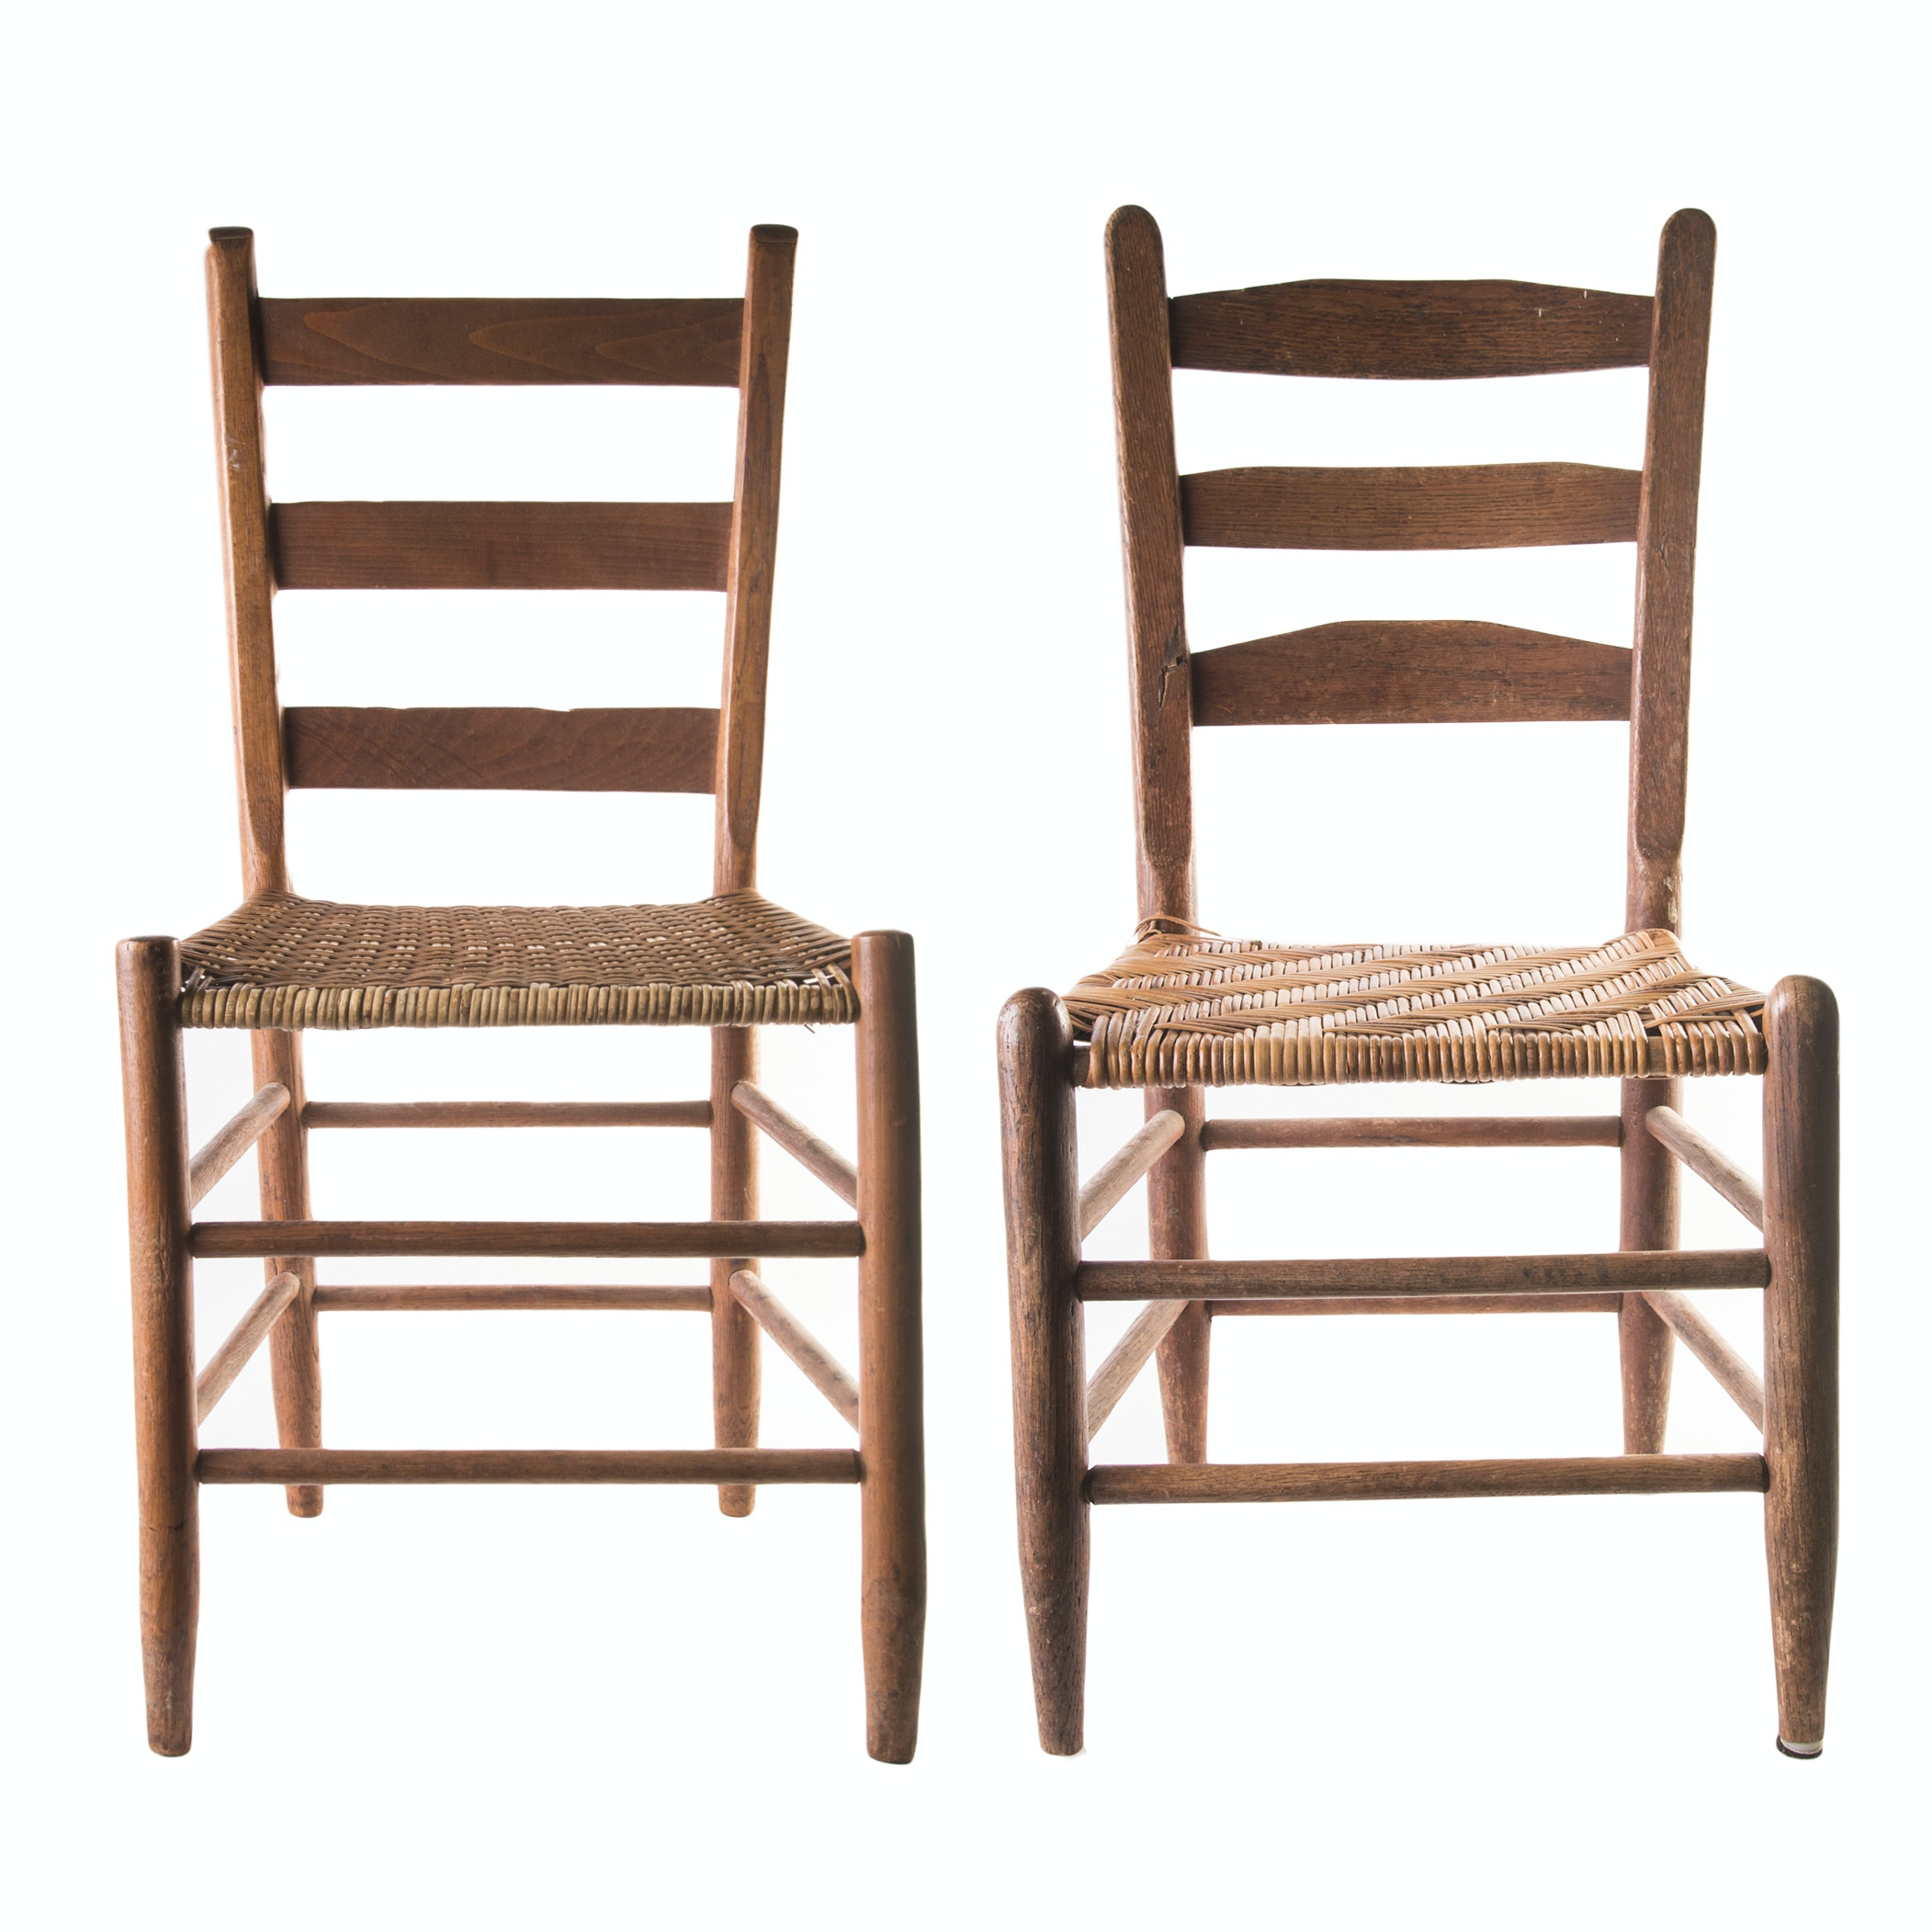 Vintage Caned Seat Ladderback Chairs